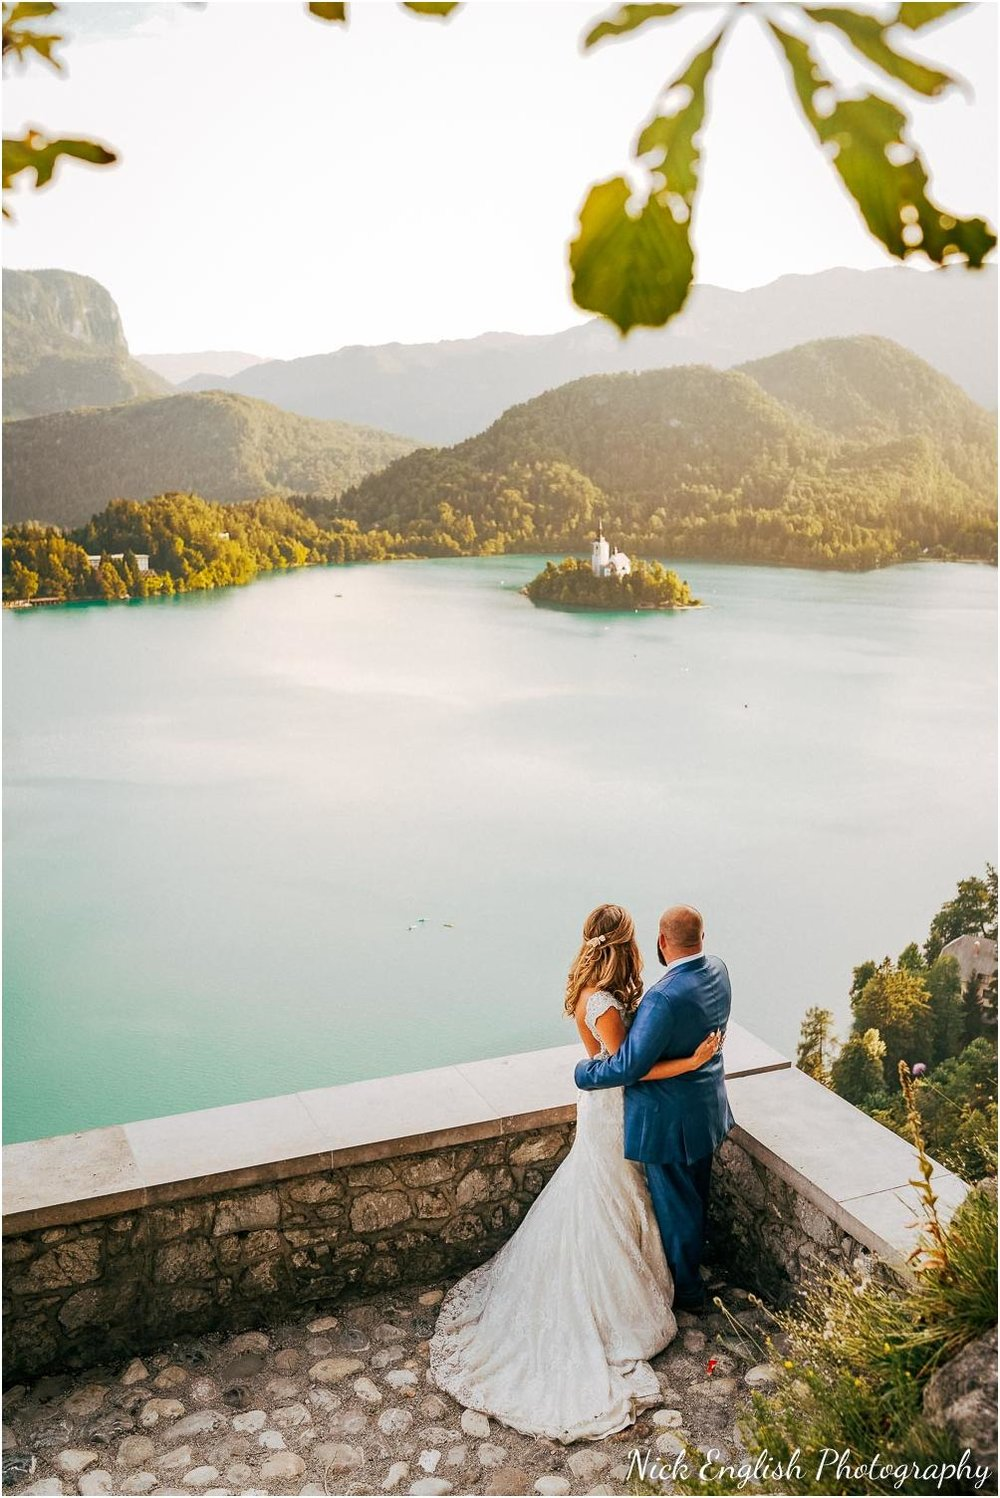 Destination_Wedding_Photographer_Slovenia_Nick_English_Photography-70-27.jpg